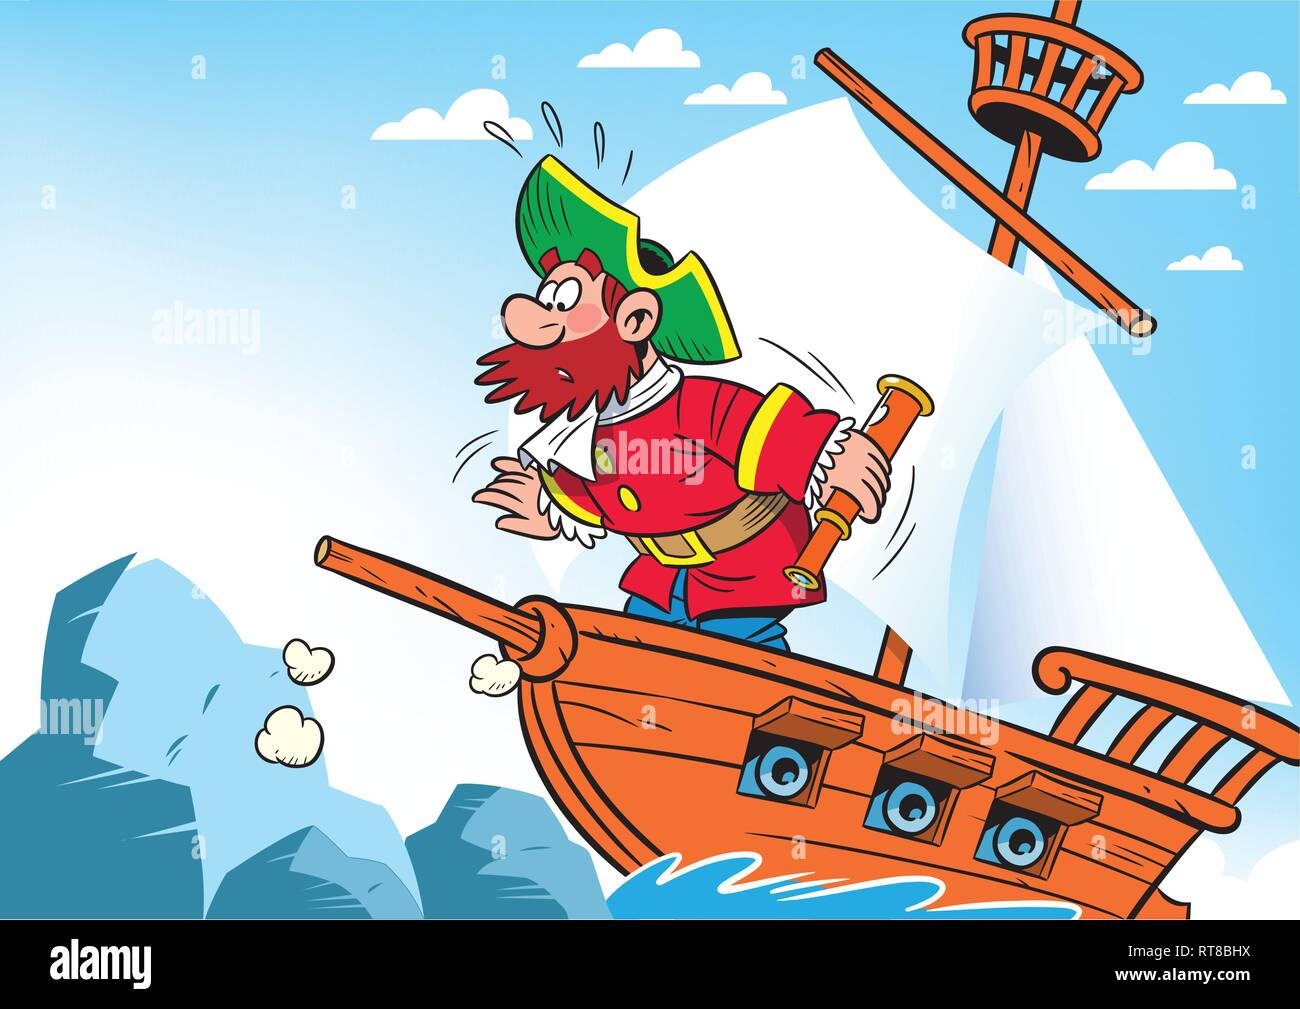 cartoon ship high resolution stock photography and images alamy https www alamy com the illustration shows cartoon the captain on the ship which crashed into the reef image238671270 html